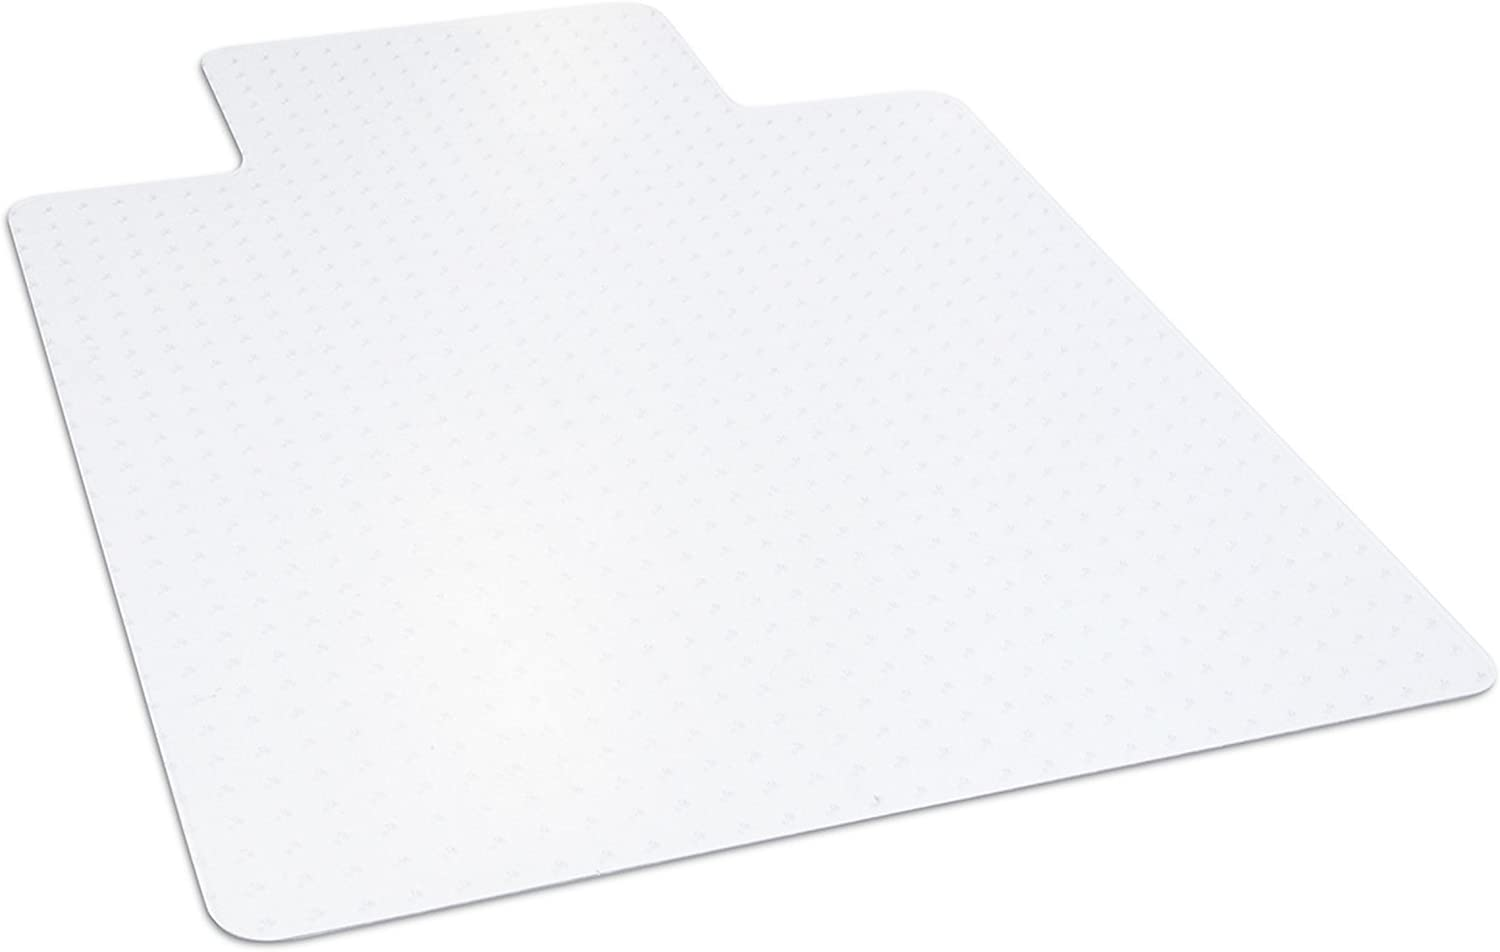 Dimex 36 x 48 Clear Office Chair Mat with Lip for Low and Medium Pile Carpet, Made in The USA, BPA and Phthalate Free, C511001J